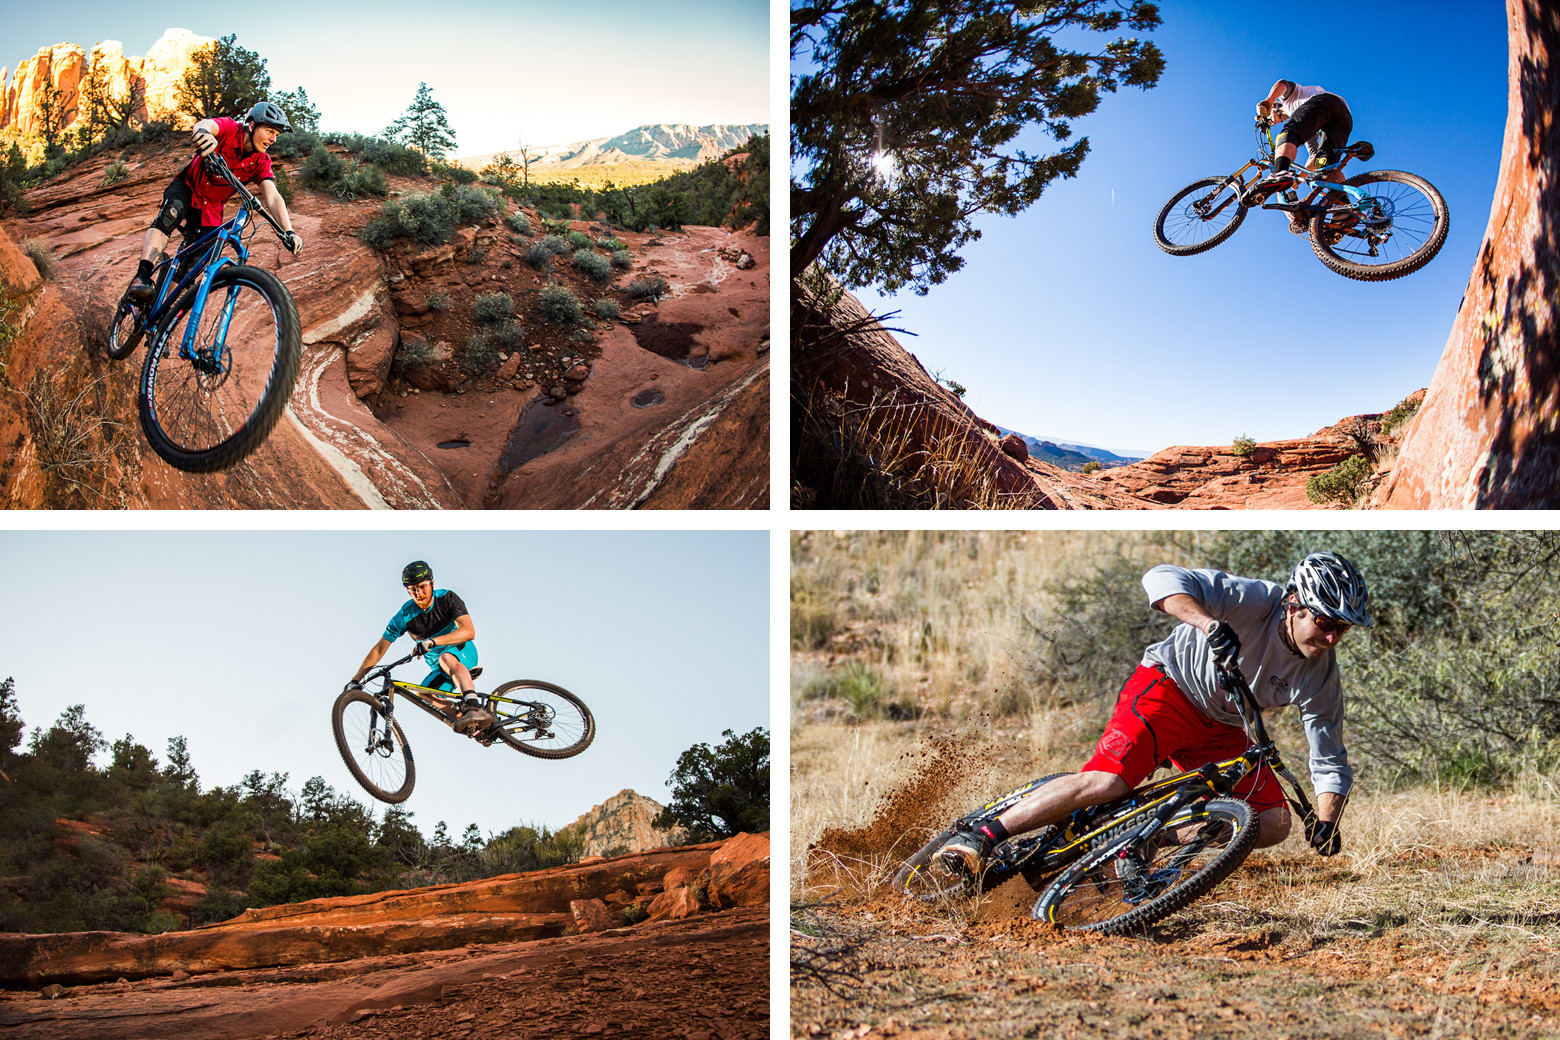 f7eed7ed782 Thanks to them the bikes were dialed in when our crew arrived, maximizing  our trail time. With their help all the elements for testing mountain bikes  that ...